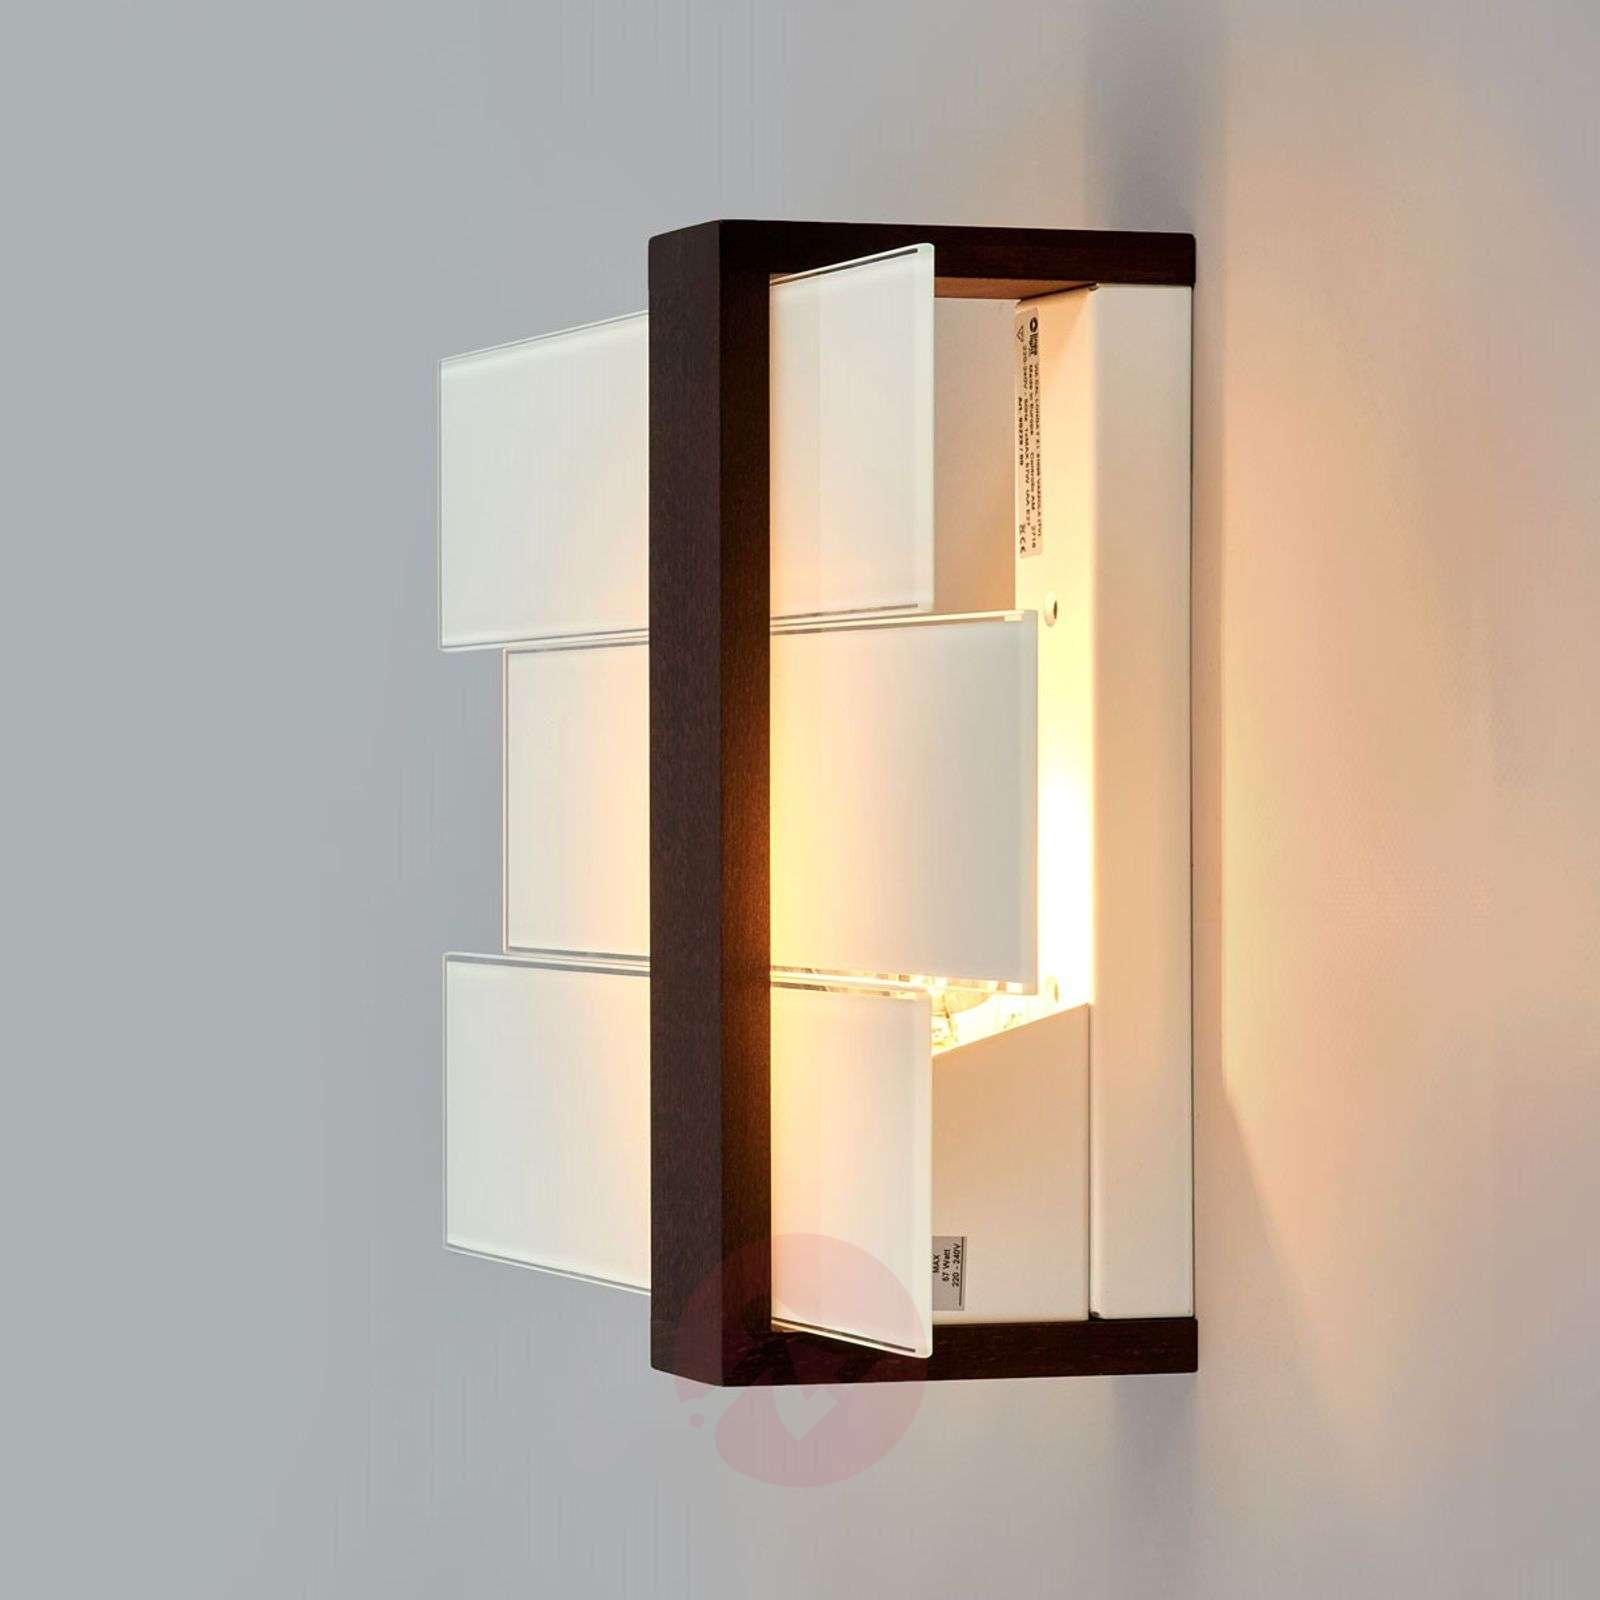 TRIAD attractive wall and ceiling light-6043236-03